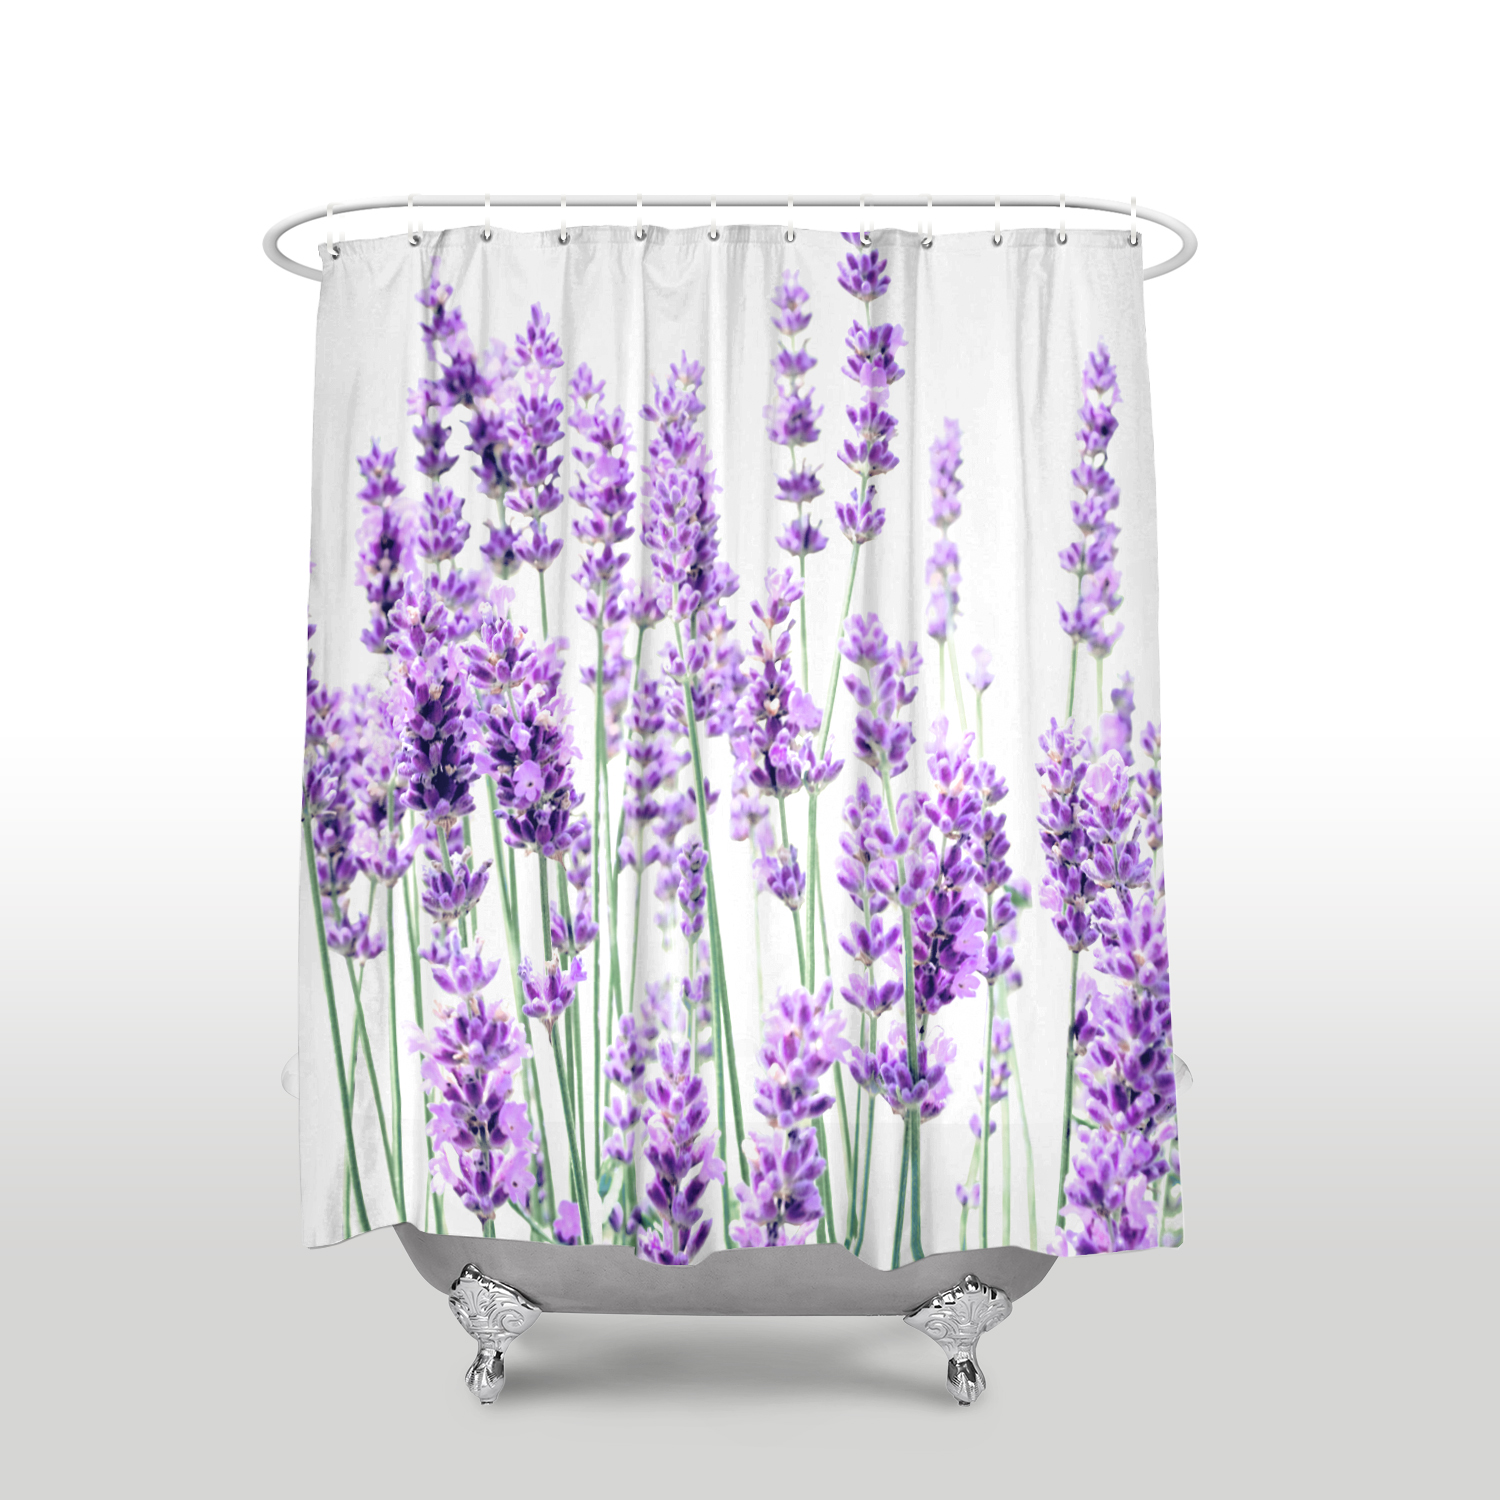 Lavender Shower Curtains New Arrival Waterproof Lavender Shower Curtain With Hooks Polyester Fabric Flower Pattern Bathroom Curtains For Home Decor